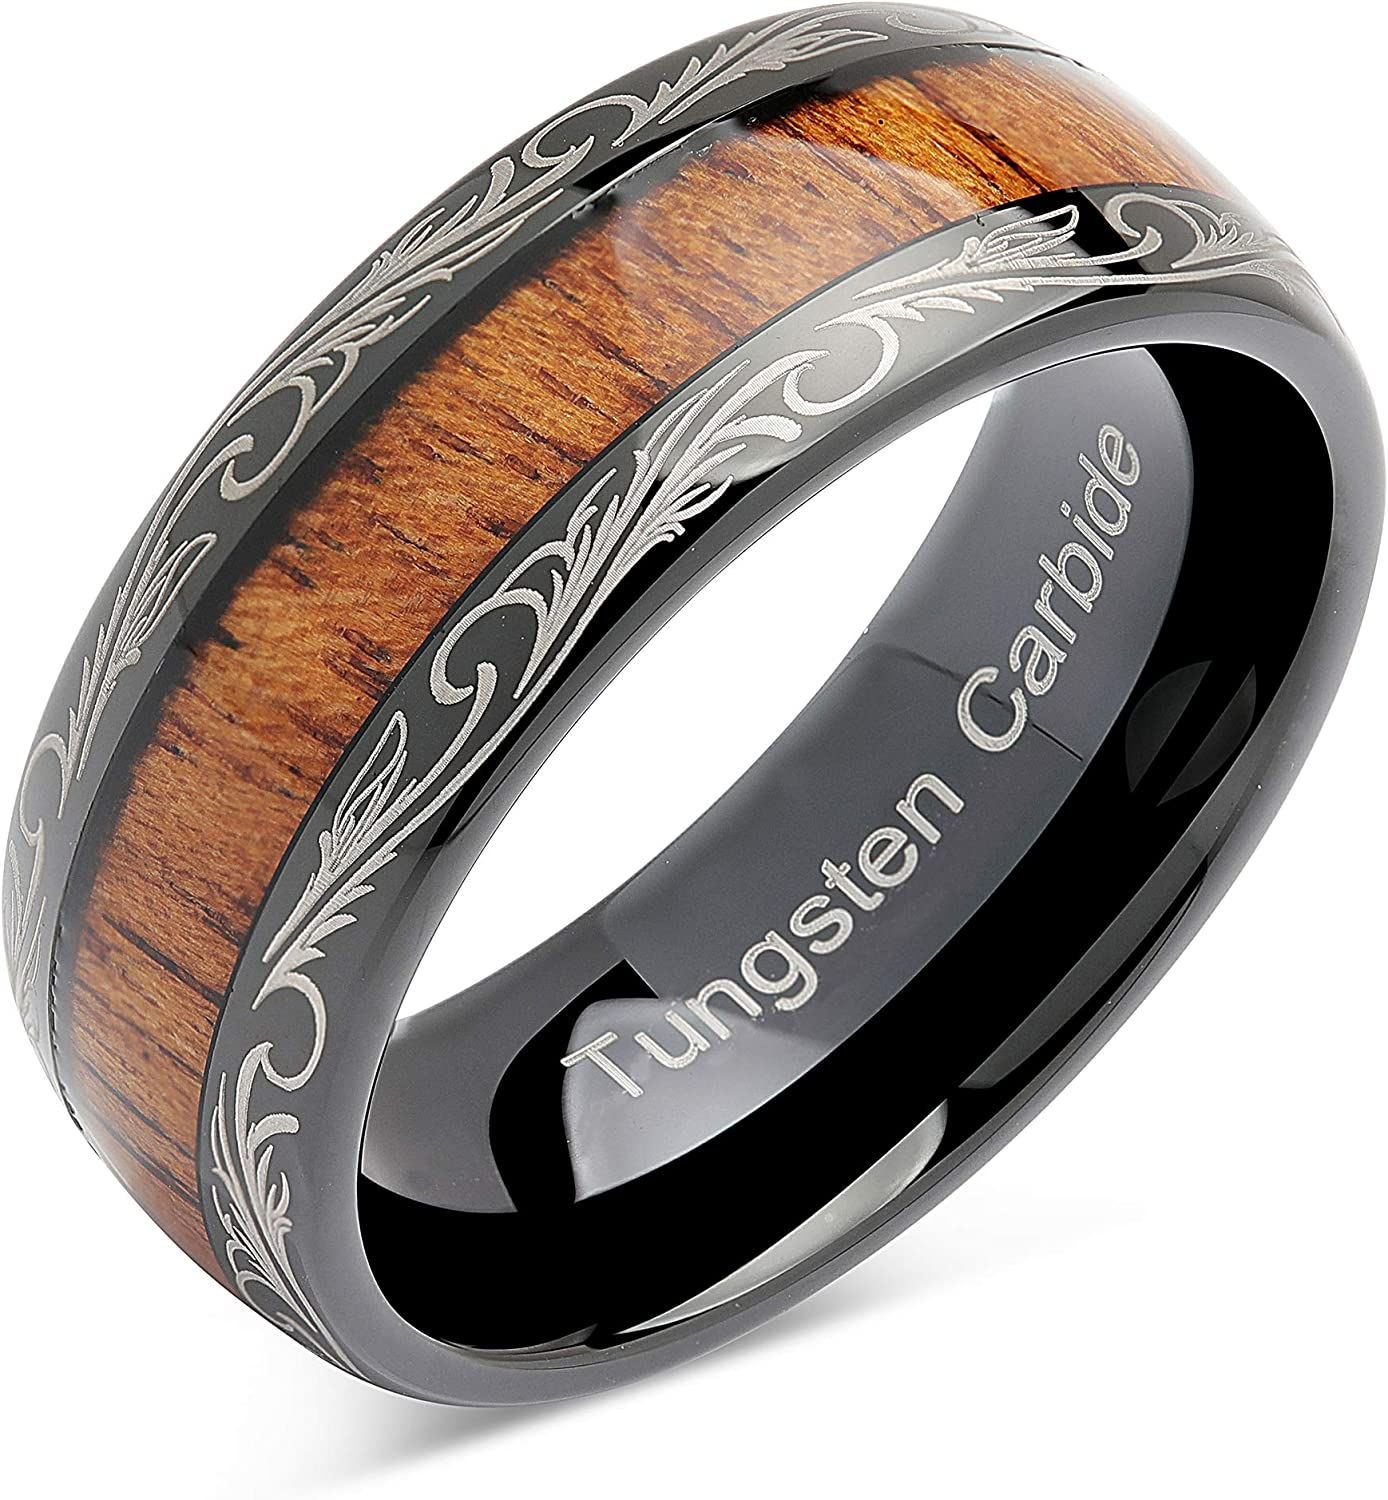 100S JEWELRY Tungsten Rings for Men Wedding Band Koa Wood Inlaid Dome Edge Comfort Fit Size 6-16